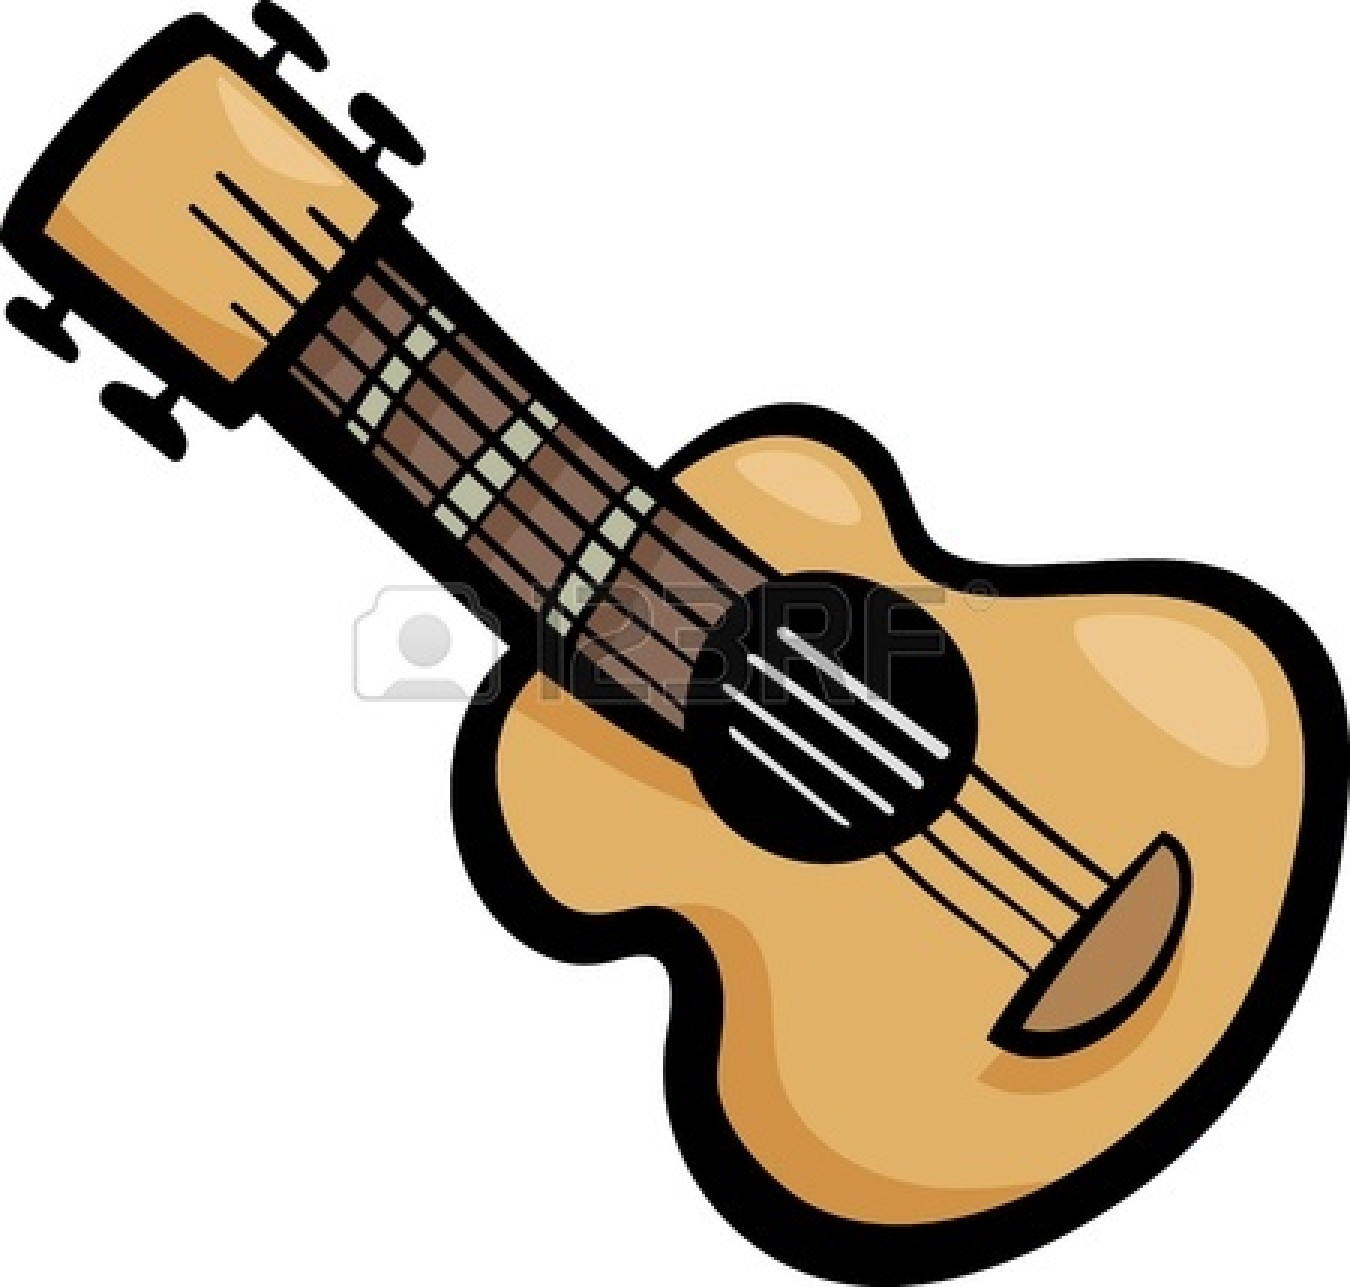 Ukulele clipart red Clipart Panda earnings%20clipart Images Free